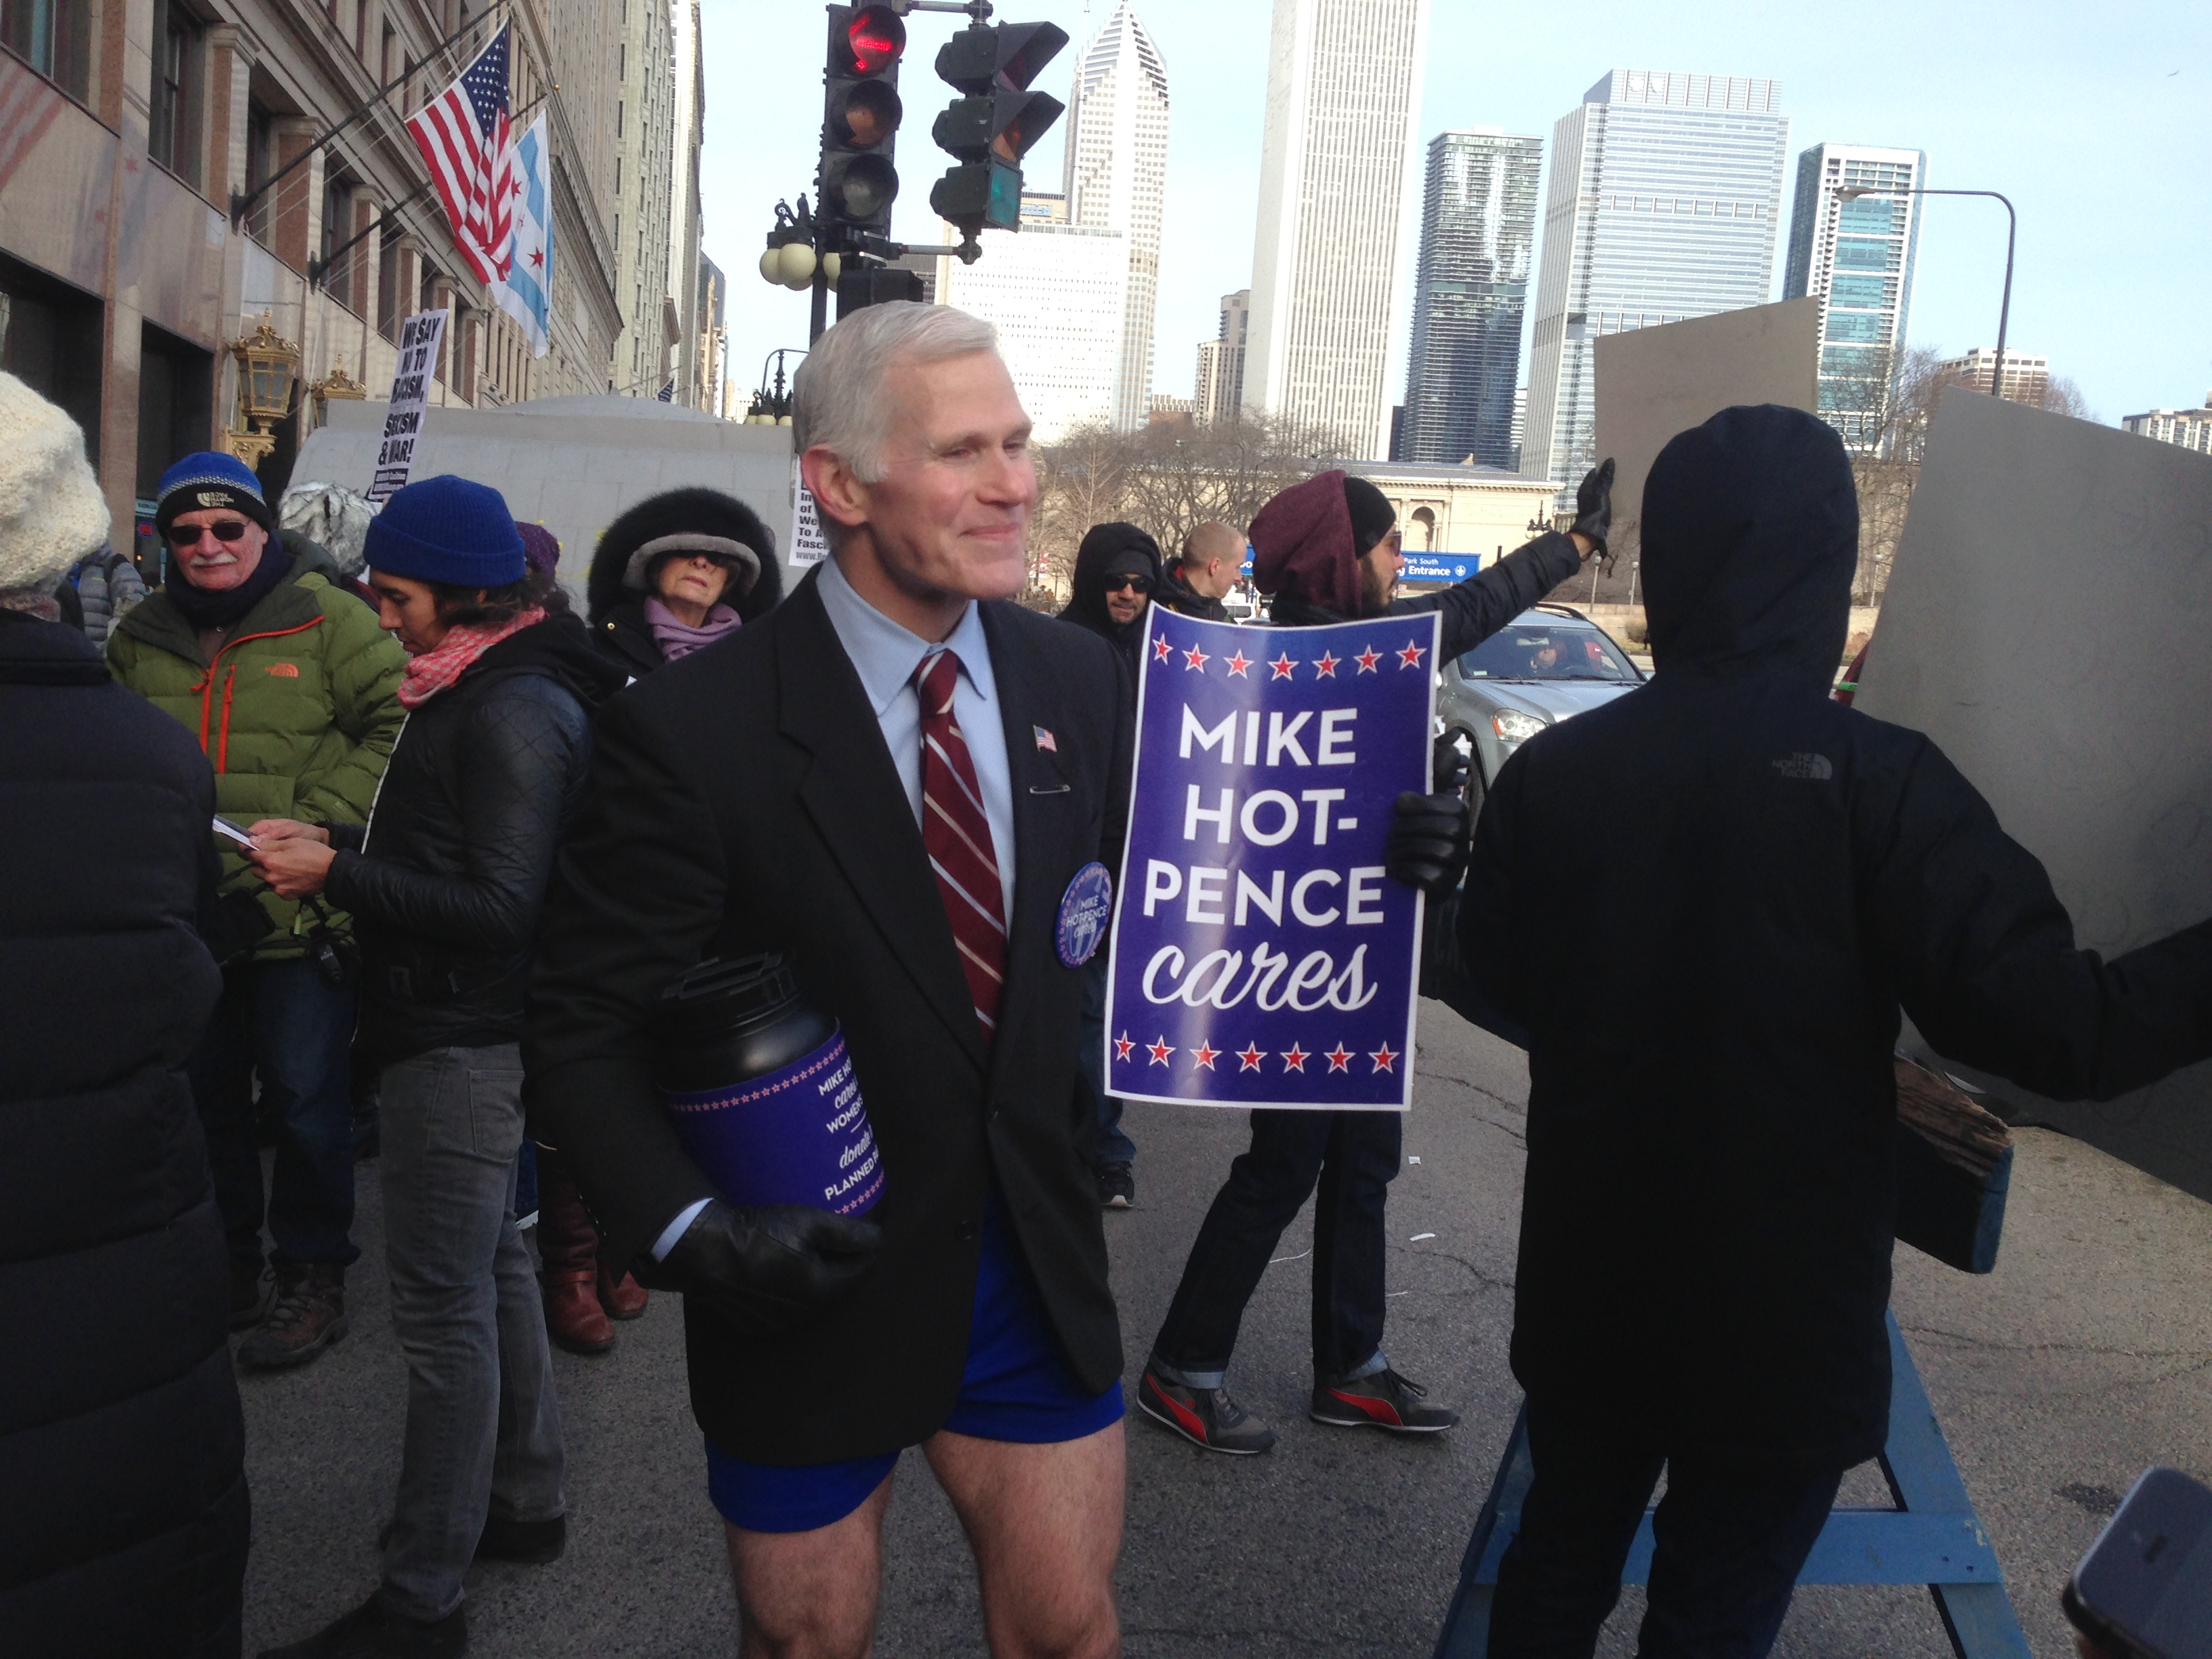 Glenn Pannell, a graphic designer from New York City, dresses as 'Mike Hot Pence' to collect donations for the Natural Resources Defense Council and other groups. On Friday, he joined protestors outside of a Republican fundraiser in Chicago. (Dan Weissmann/WBEZ)